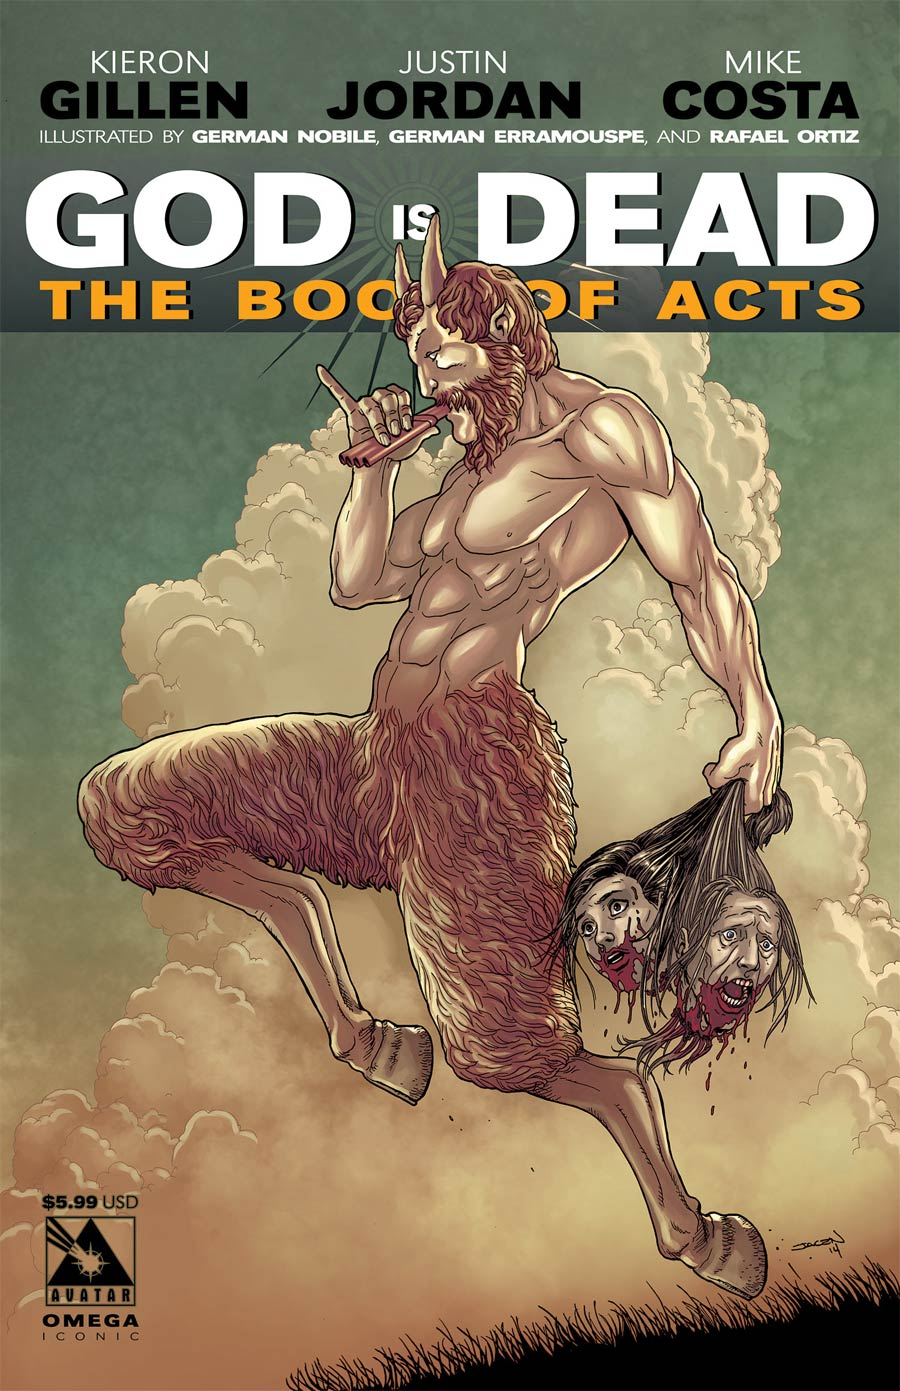 God Is Dead Book Of Acts Omega Cover D Iconic Cover